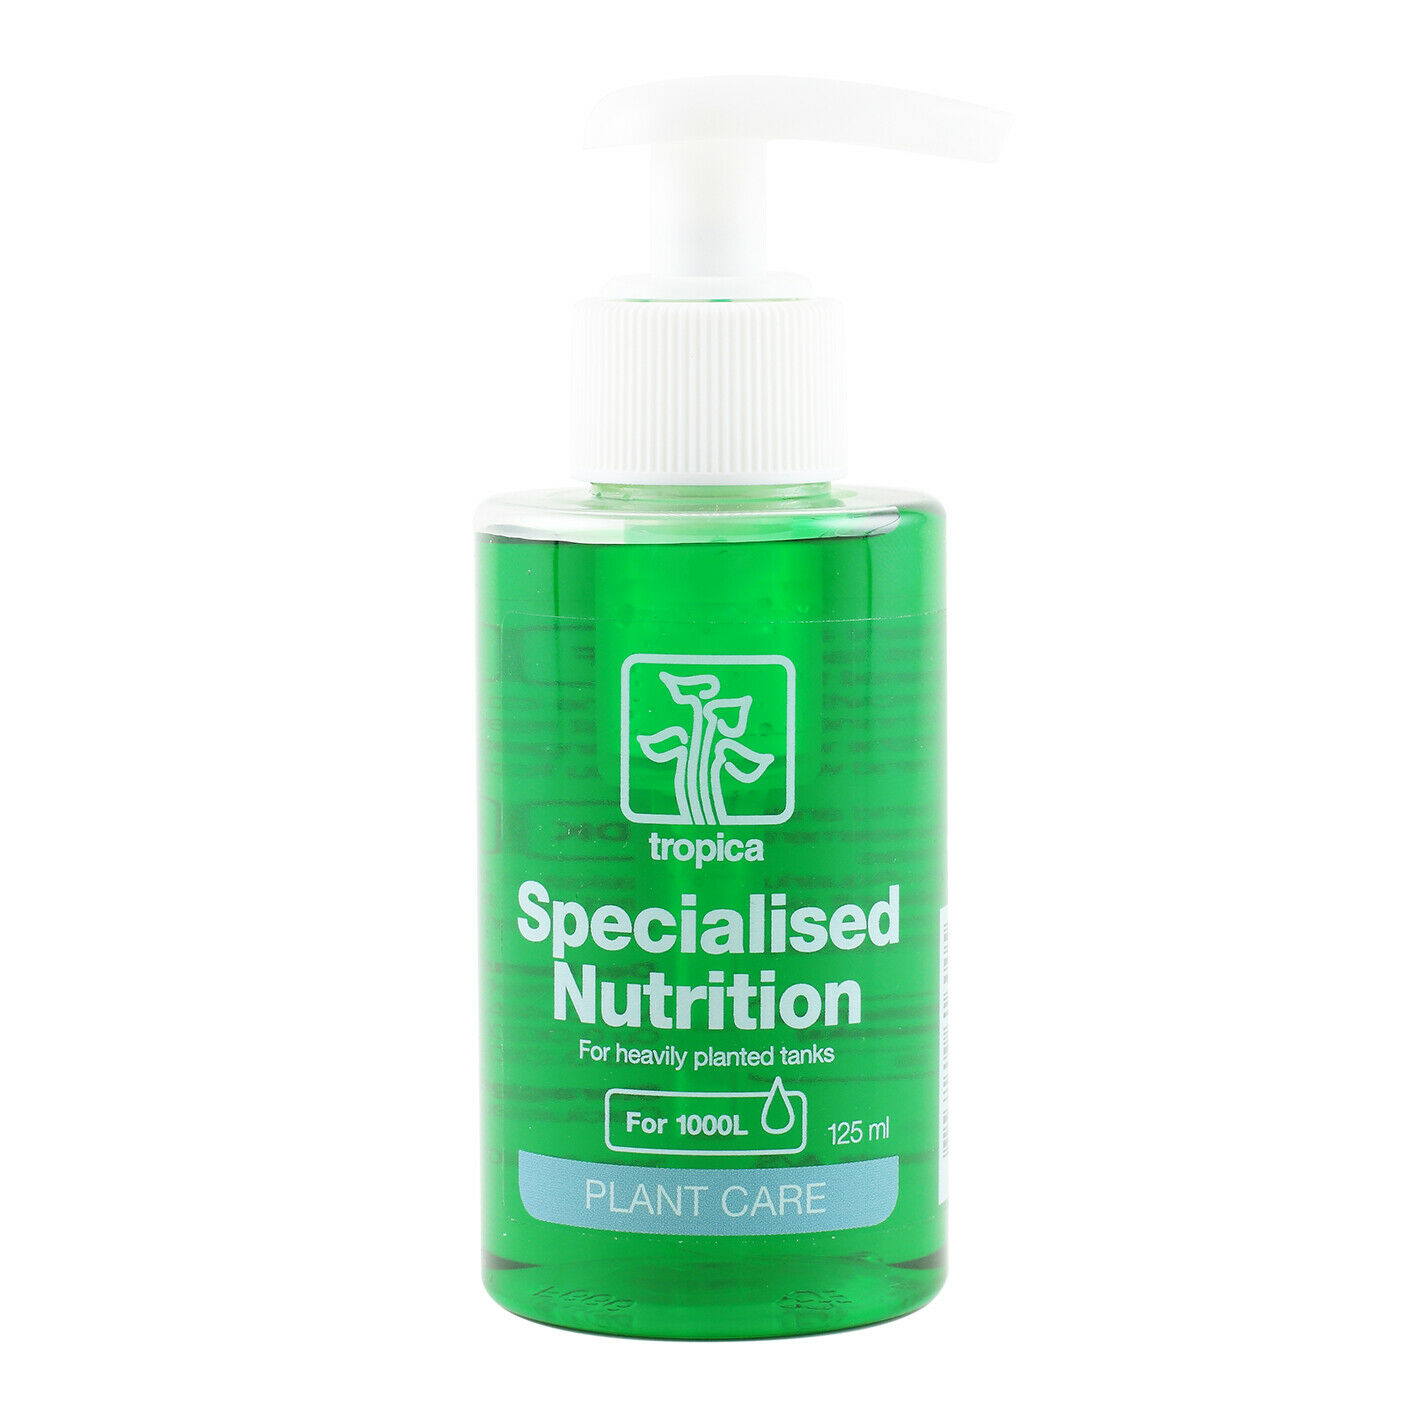 Tropica Specialised Fertiliser 125ml Liquid Fertilizer Planted Aquarium Plants